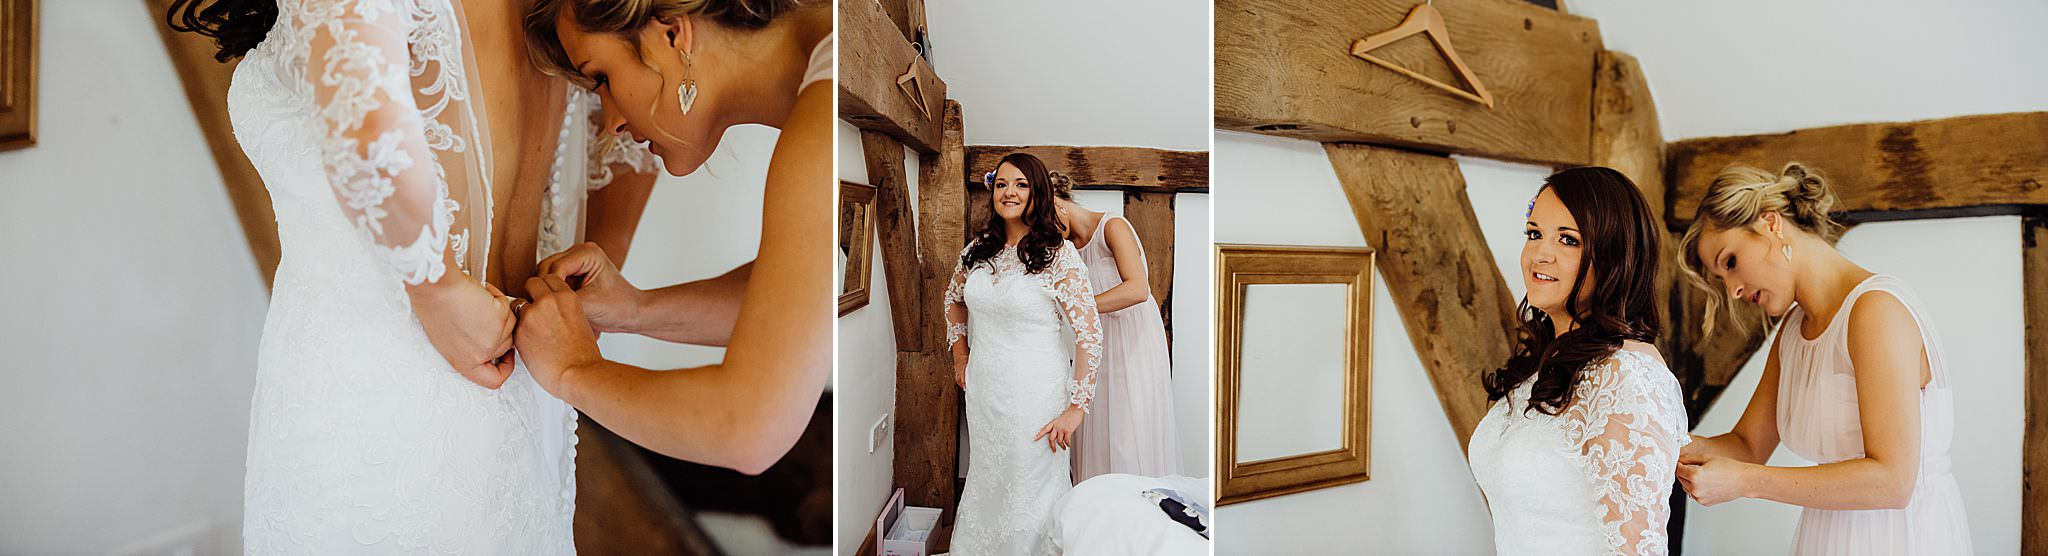 Bride putting on her wedding dress being helped by a bridesmaid